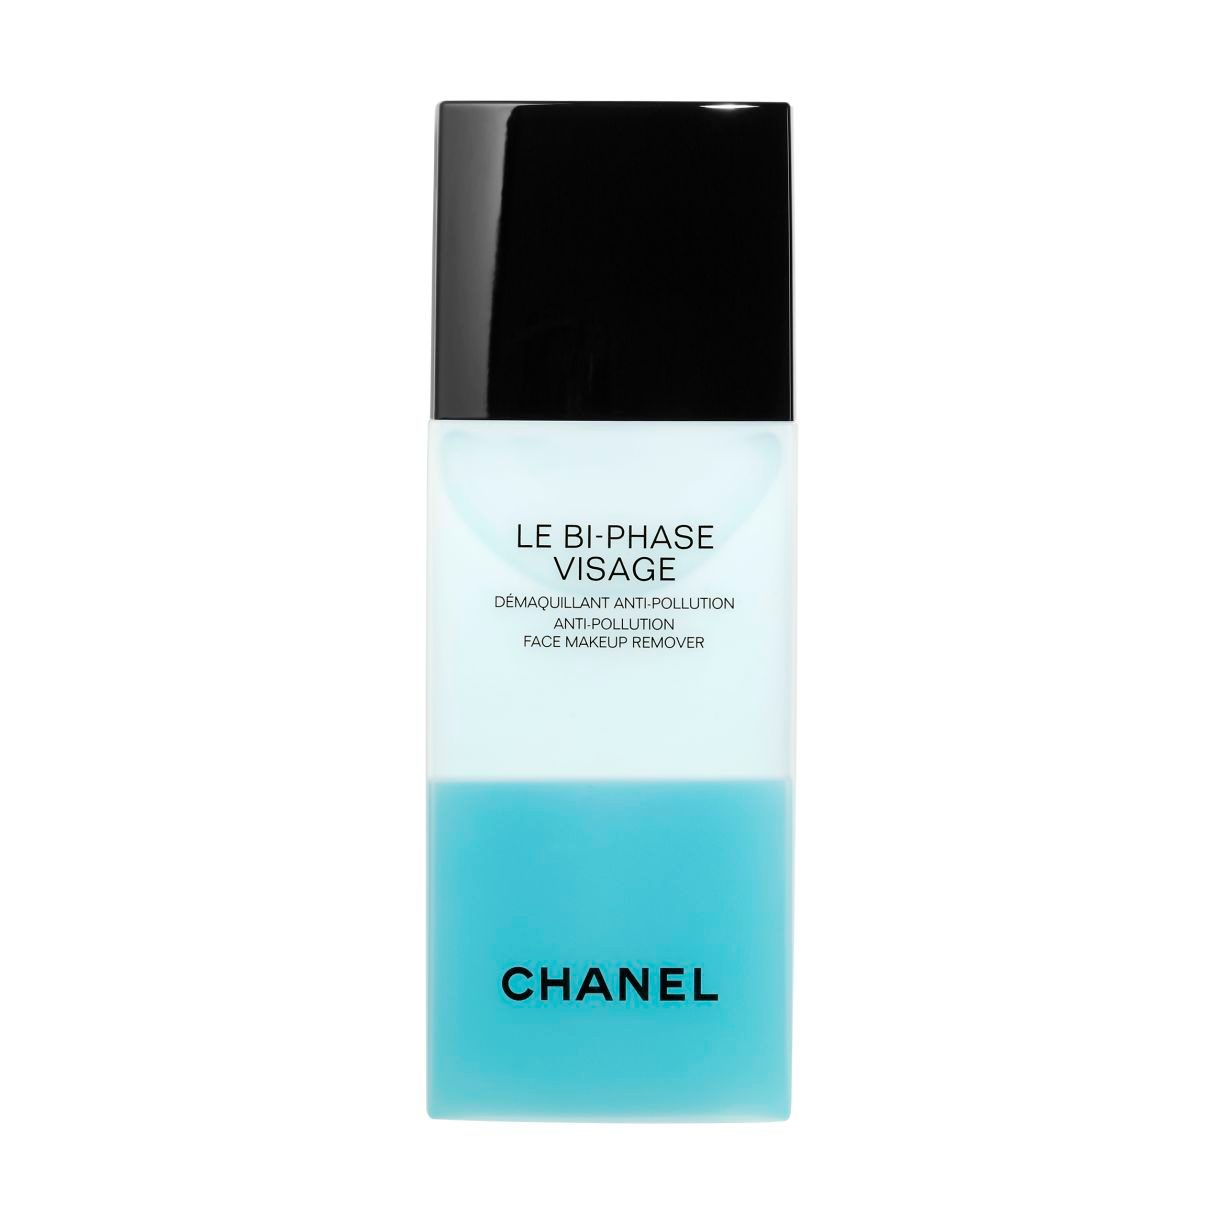 LE BI-PHASE VISAGE ANTI-POLLUTION FACE MAKEUP REMOVER